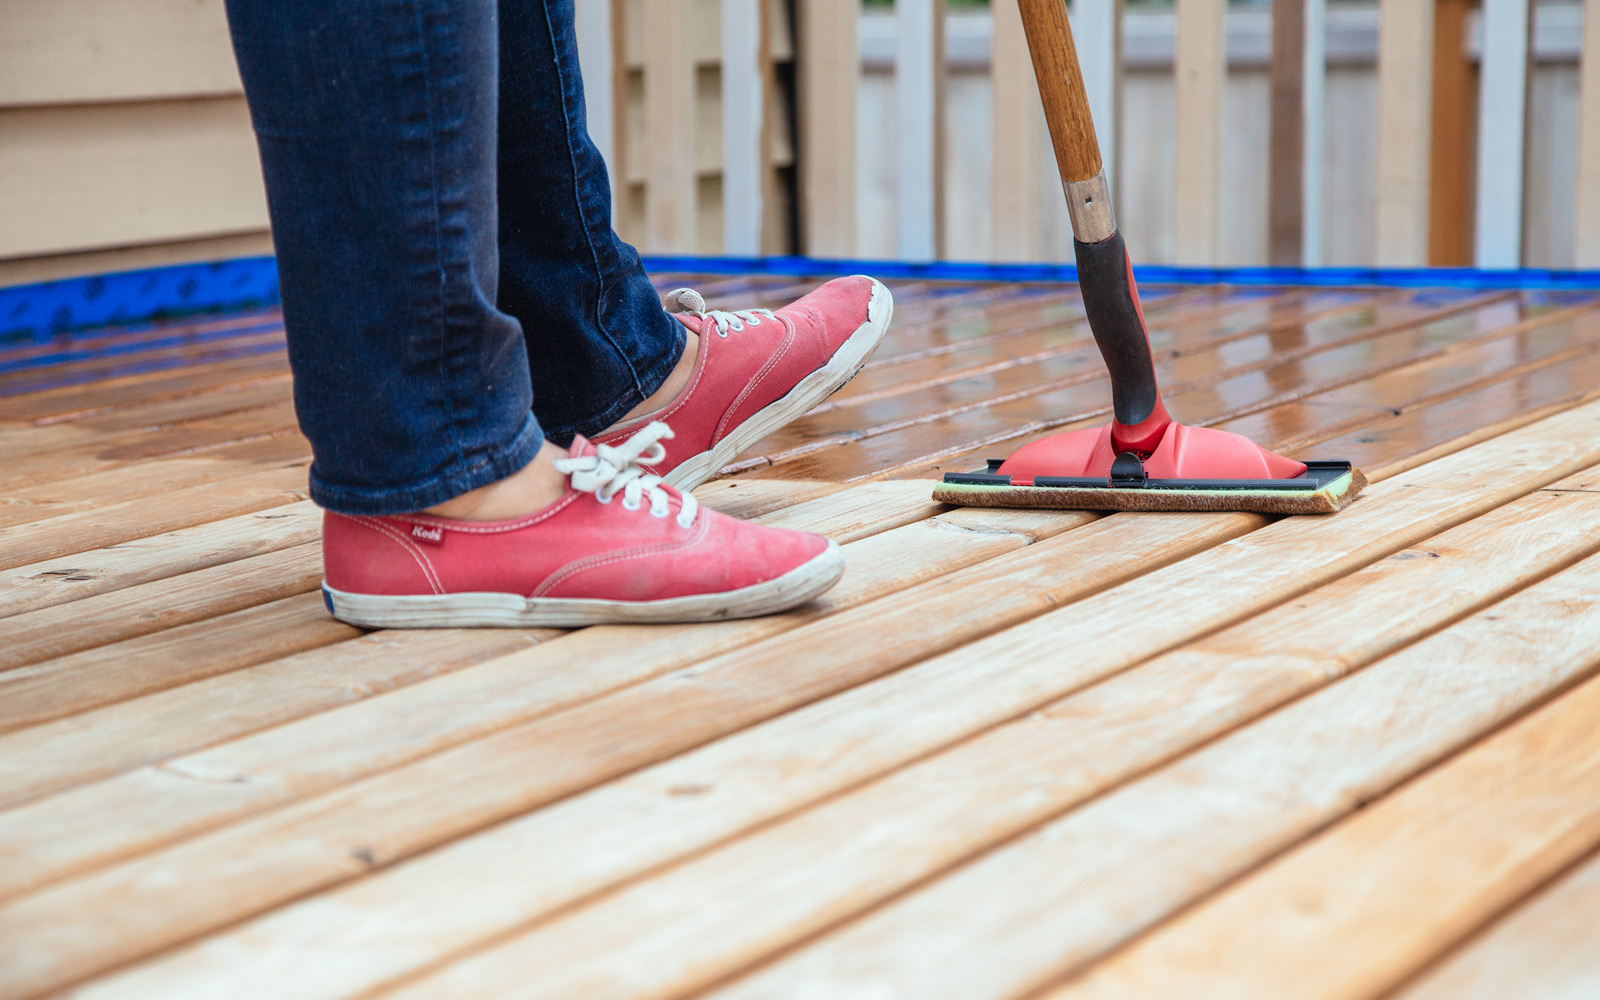 Staining or Restaining Your Deck Part 1: Timing and Tips for Best